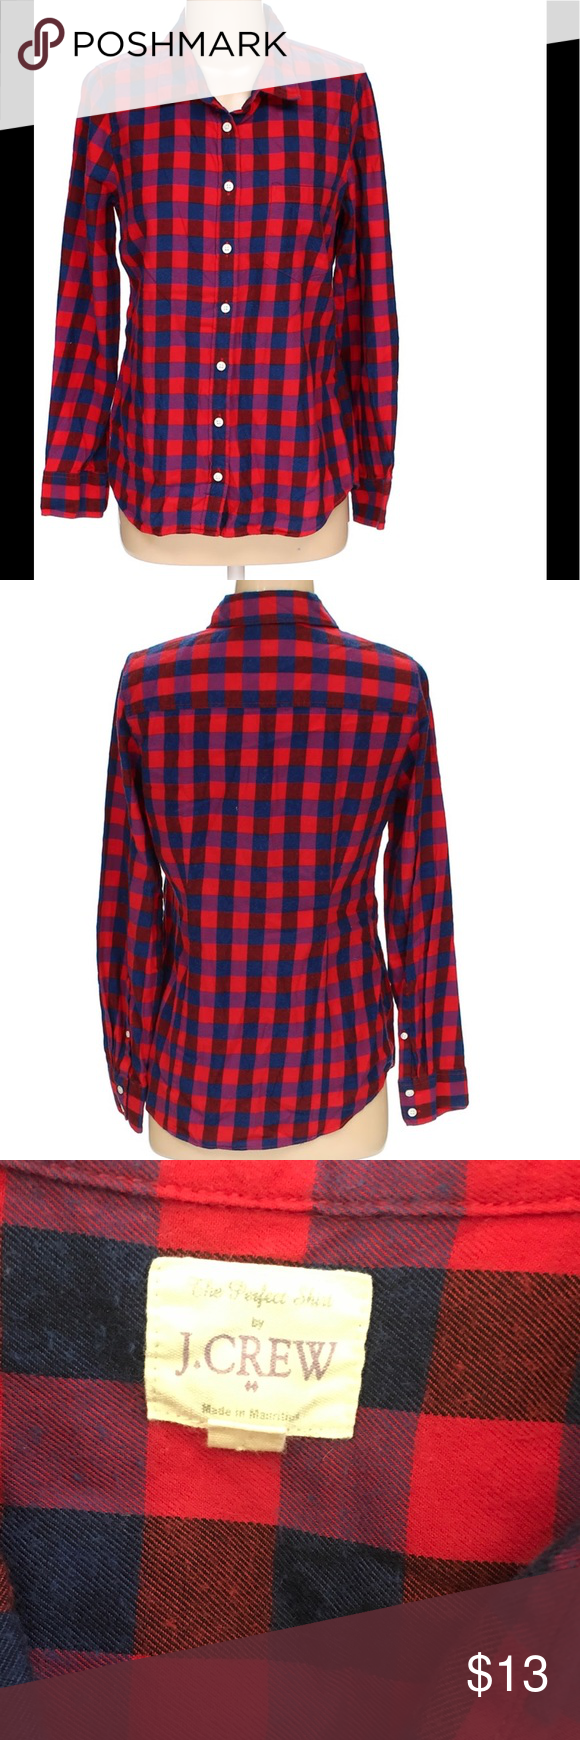 Red flannel shirts  Jew factory flannel shirt in navy red plaid  Red plaid Flannel